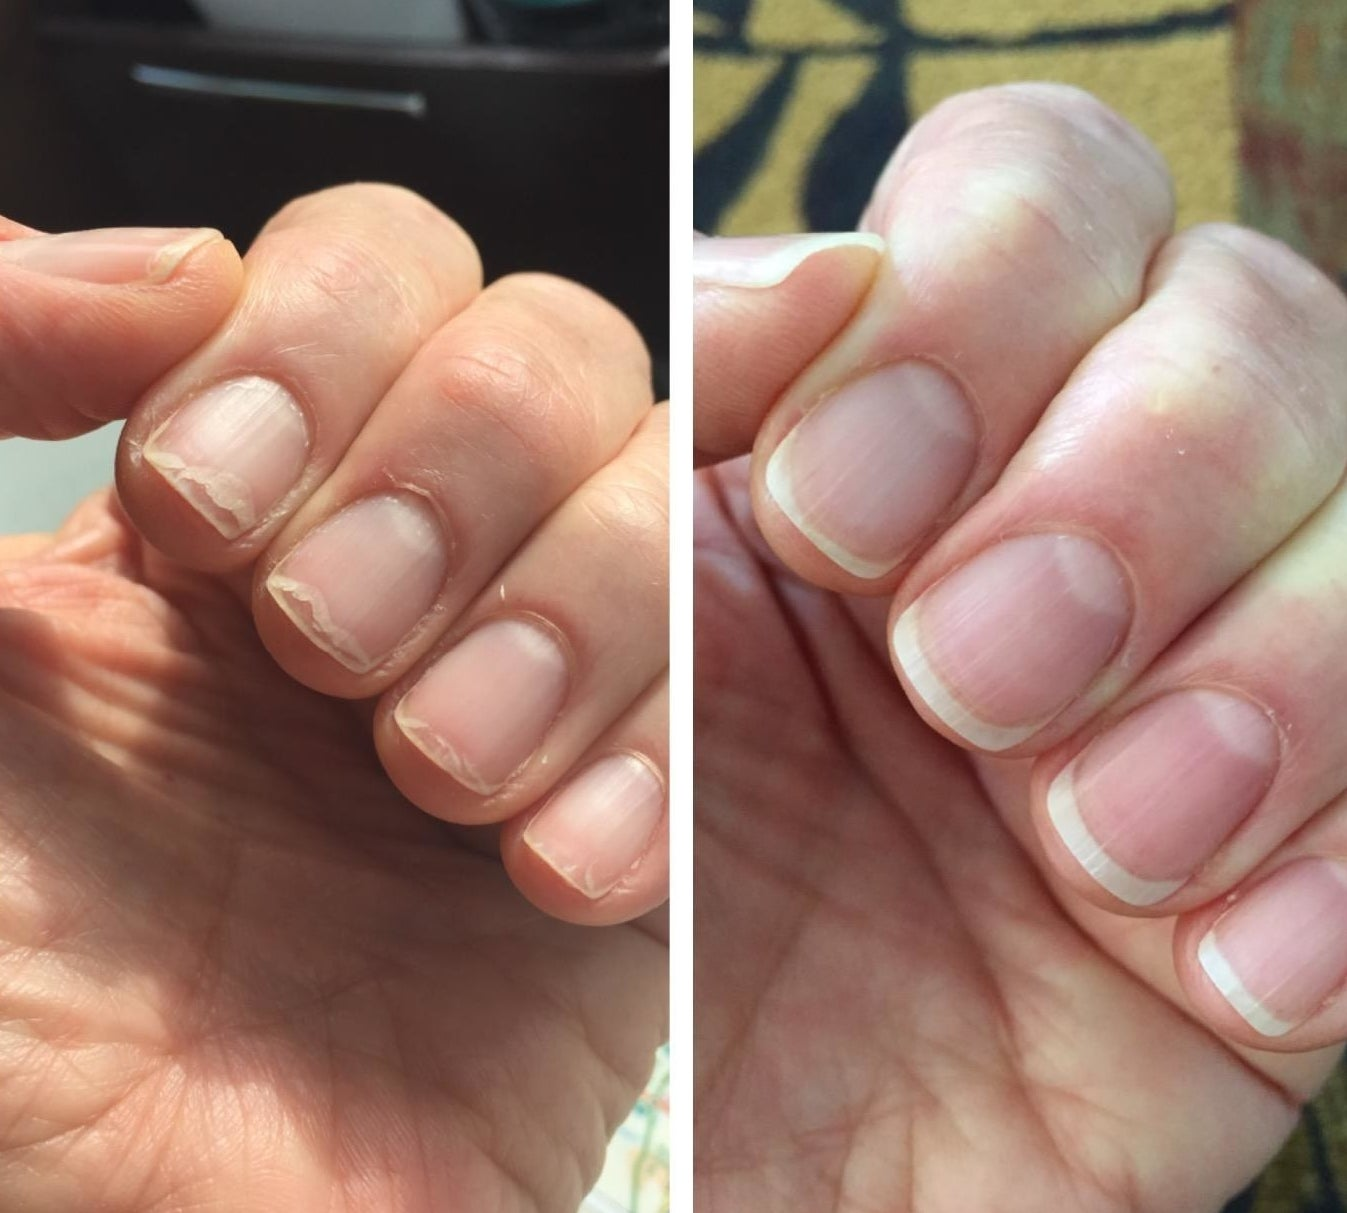 A split reviewer image showing a hand with brittle, chipped nails and dry cuticles on the left, and the same hand with healthy-looking nails and cuticle on the right